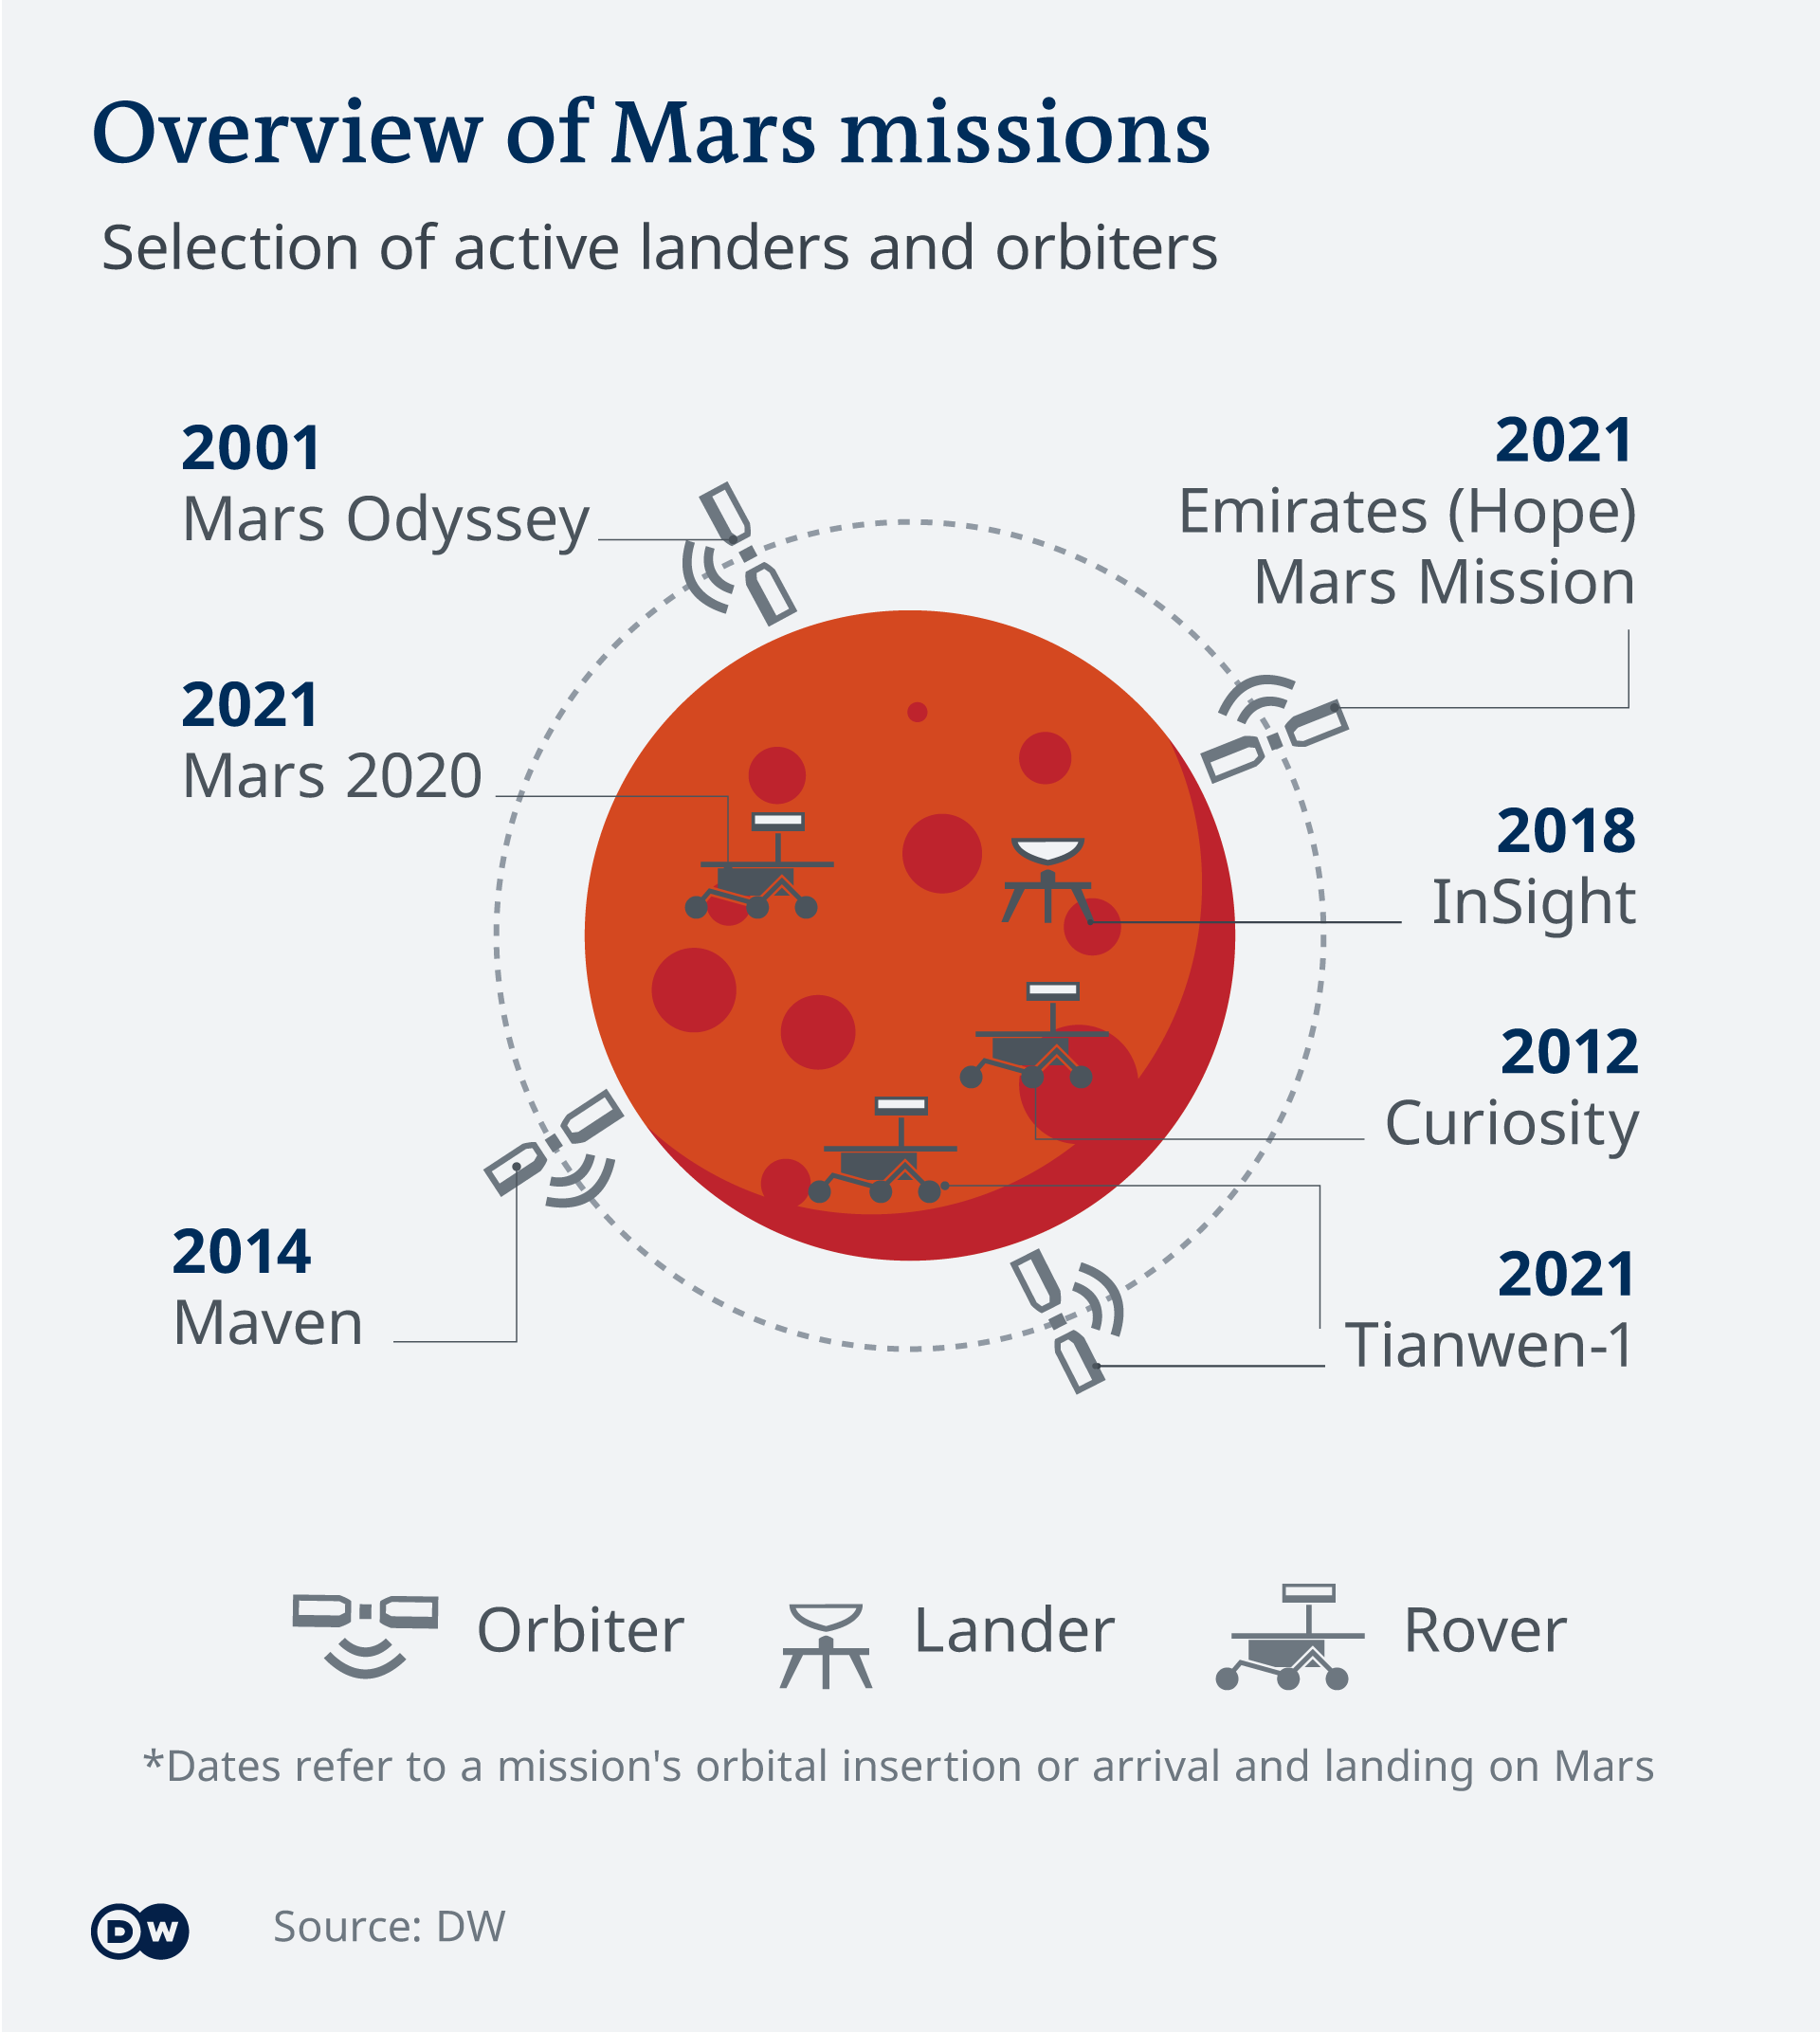 Infographic: An overview of a selection of active Mars missions (DW)